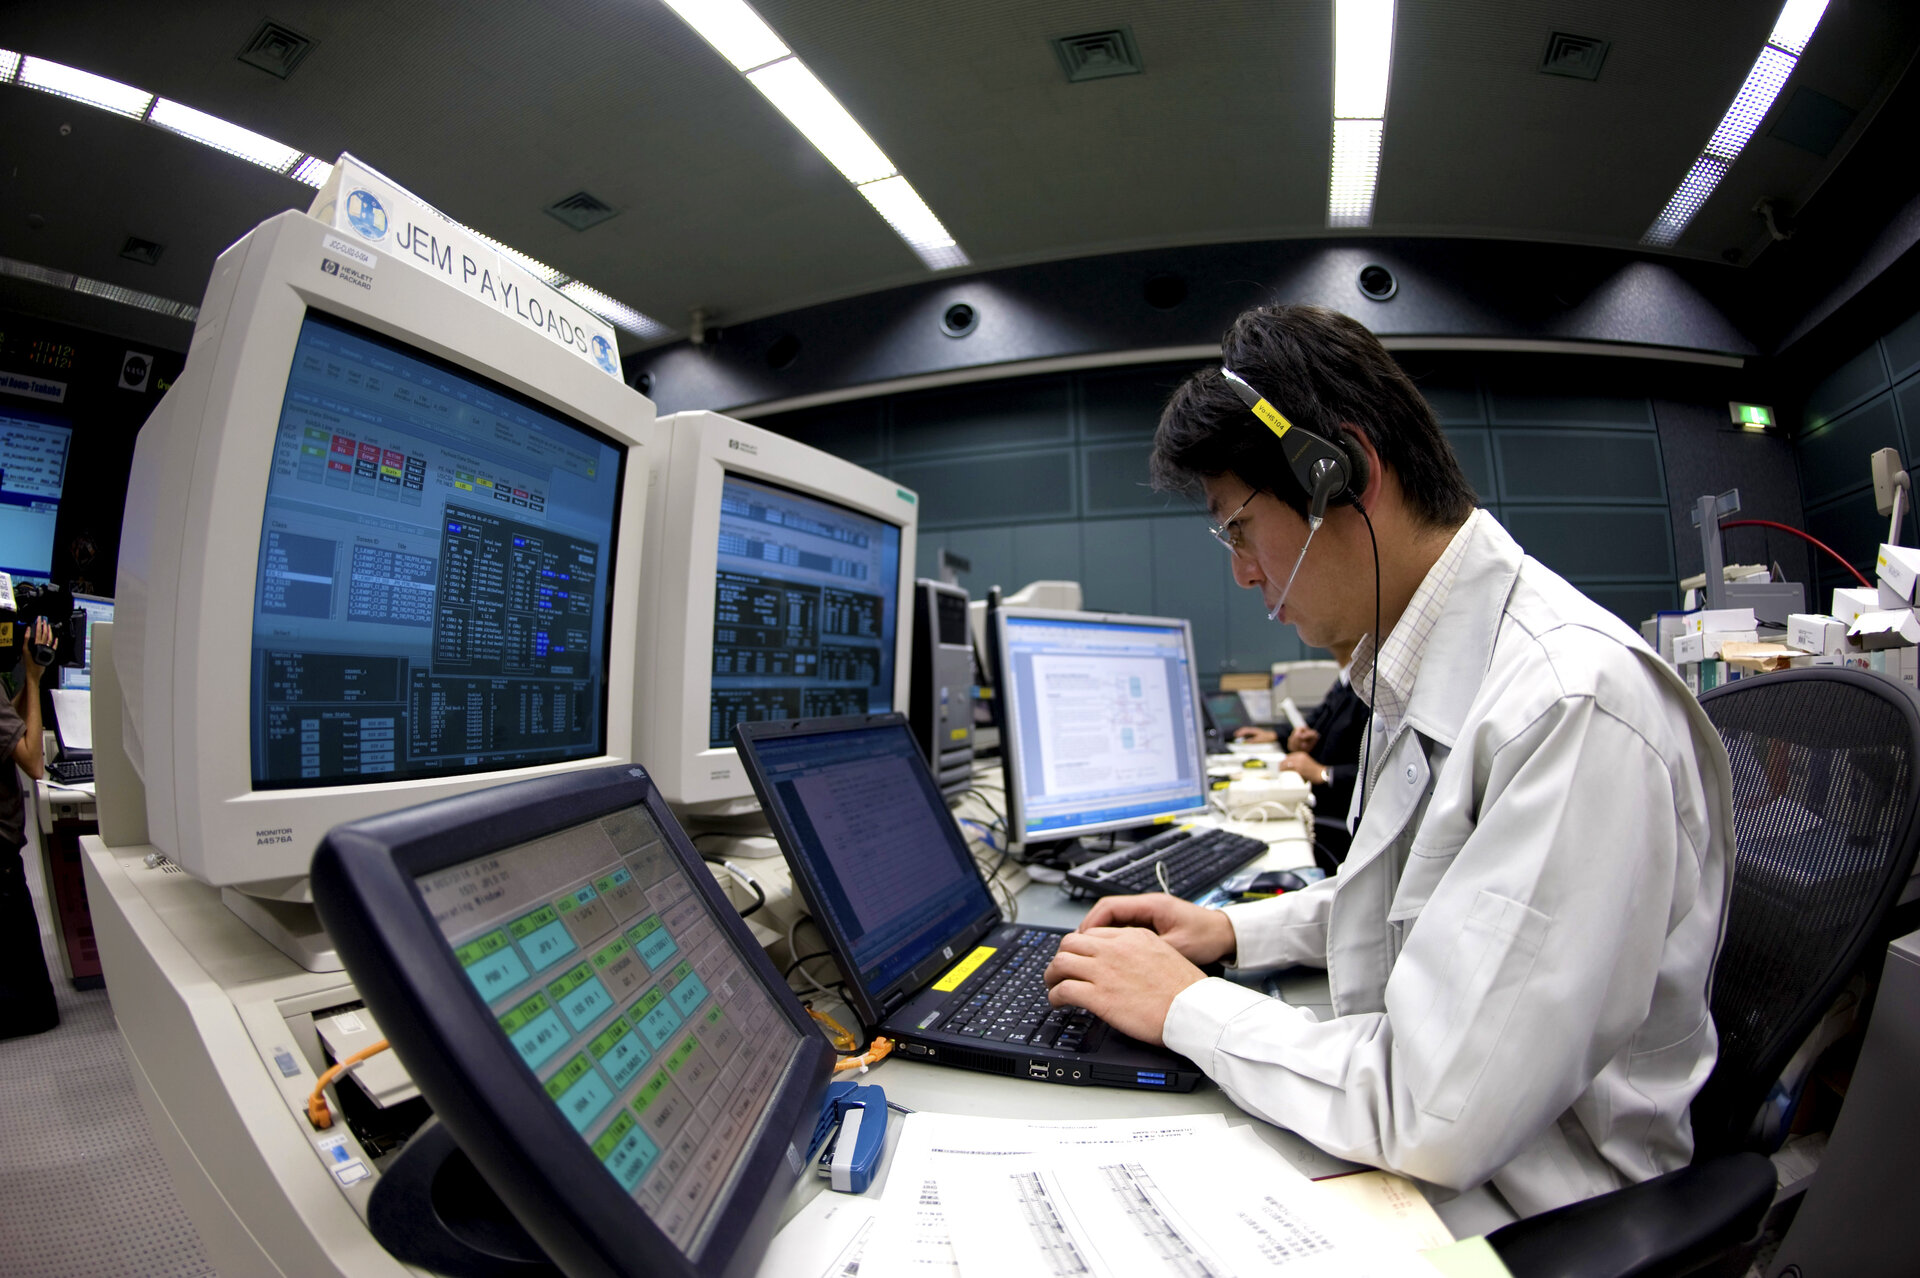 A console inside the Kibo Control Center at Japan's Tsukubu Space Center